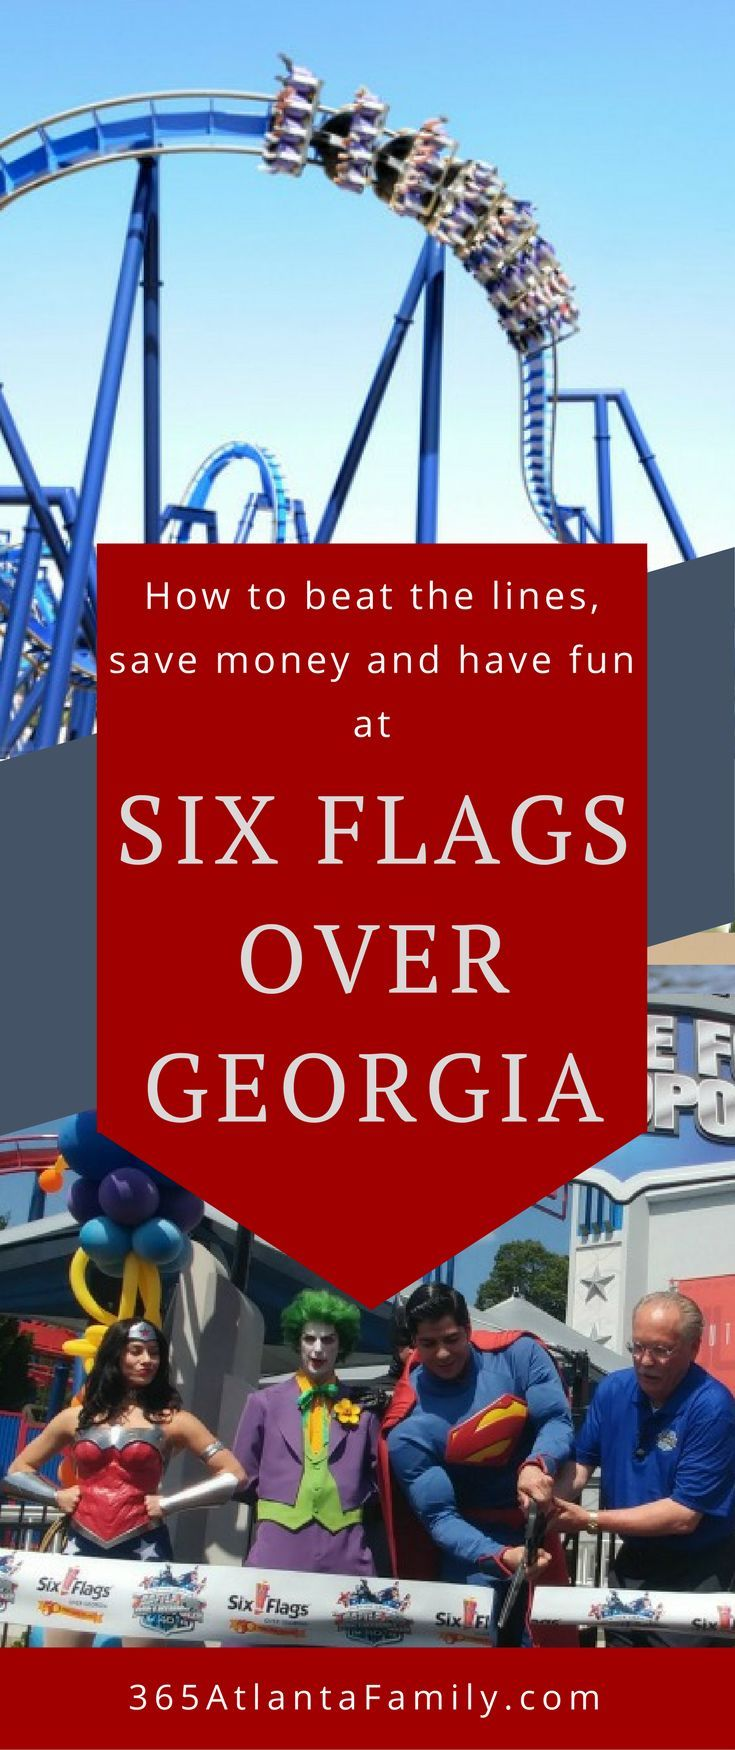 Six Flags Over Georgia Beat The Lines Discounts More Georgia Vacation Six Flags Georgia Travel